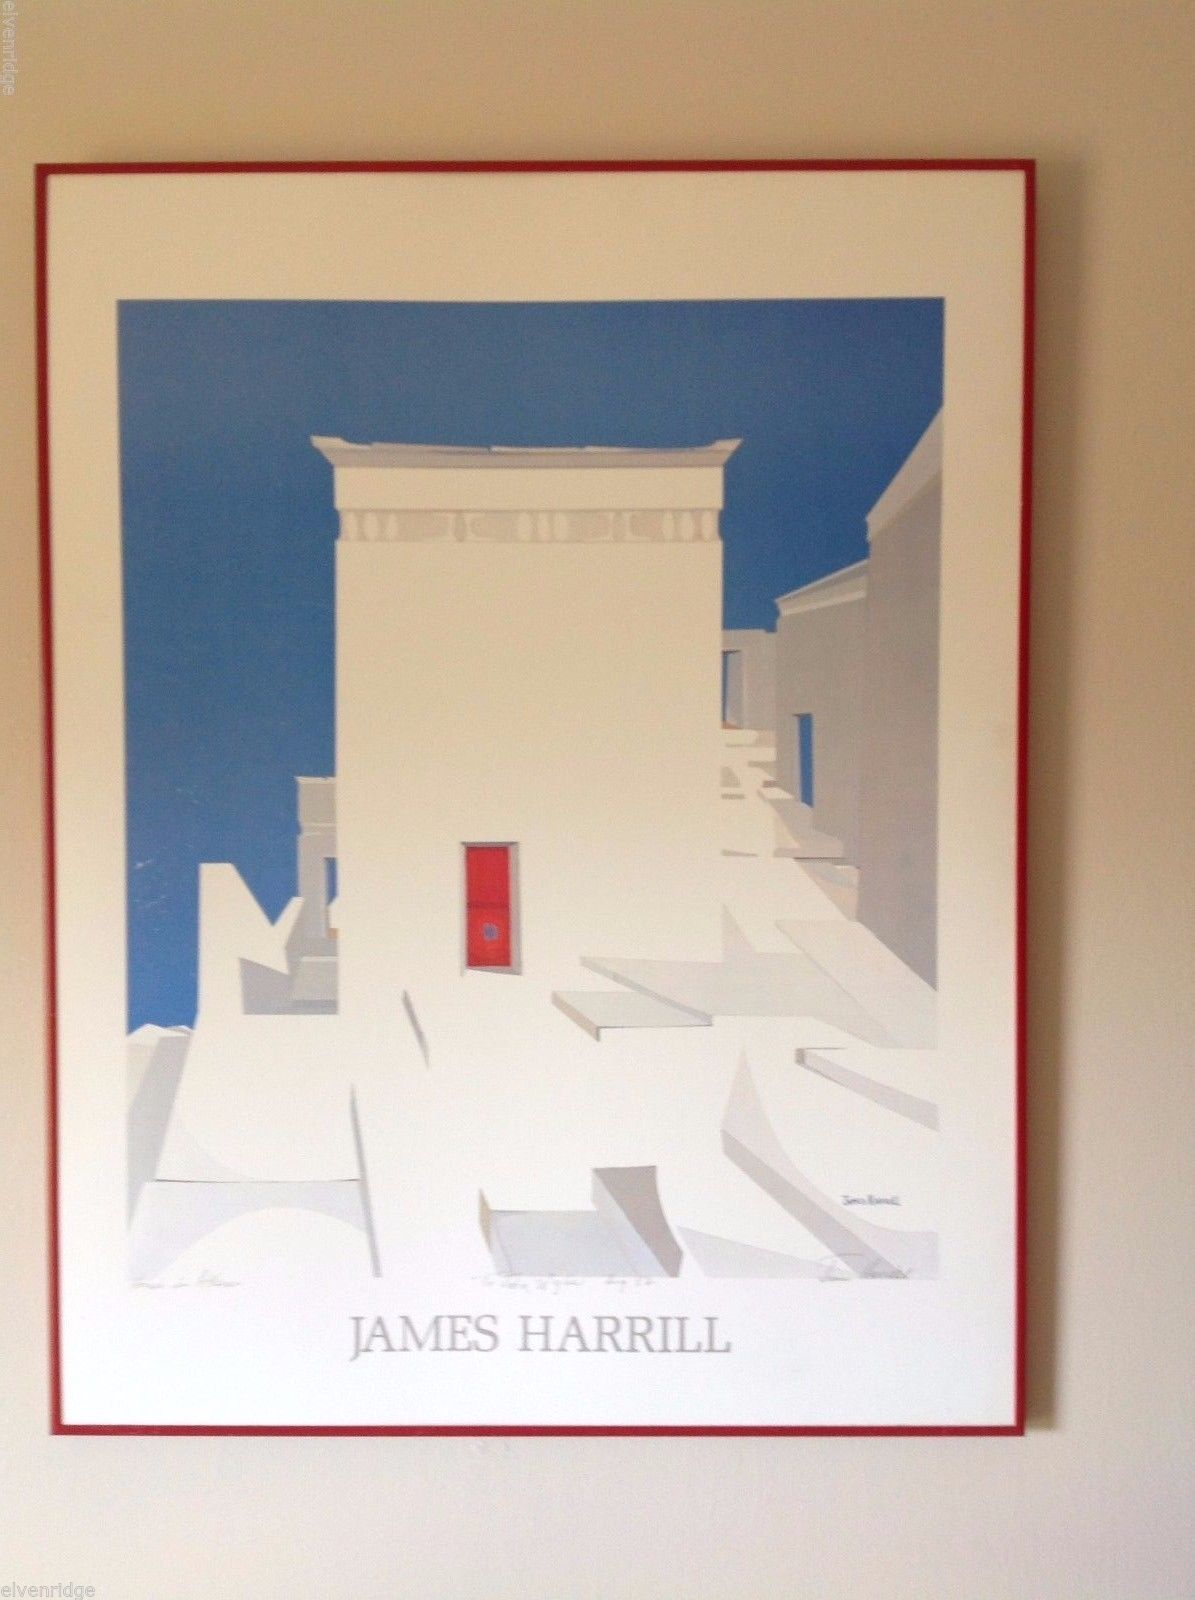 James Harrill plate Signed serigraph by artist w Dedication HOUSE IN ATHENS